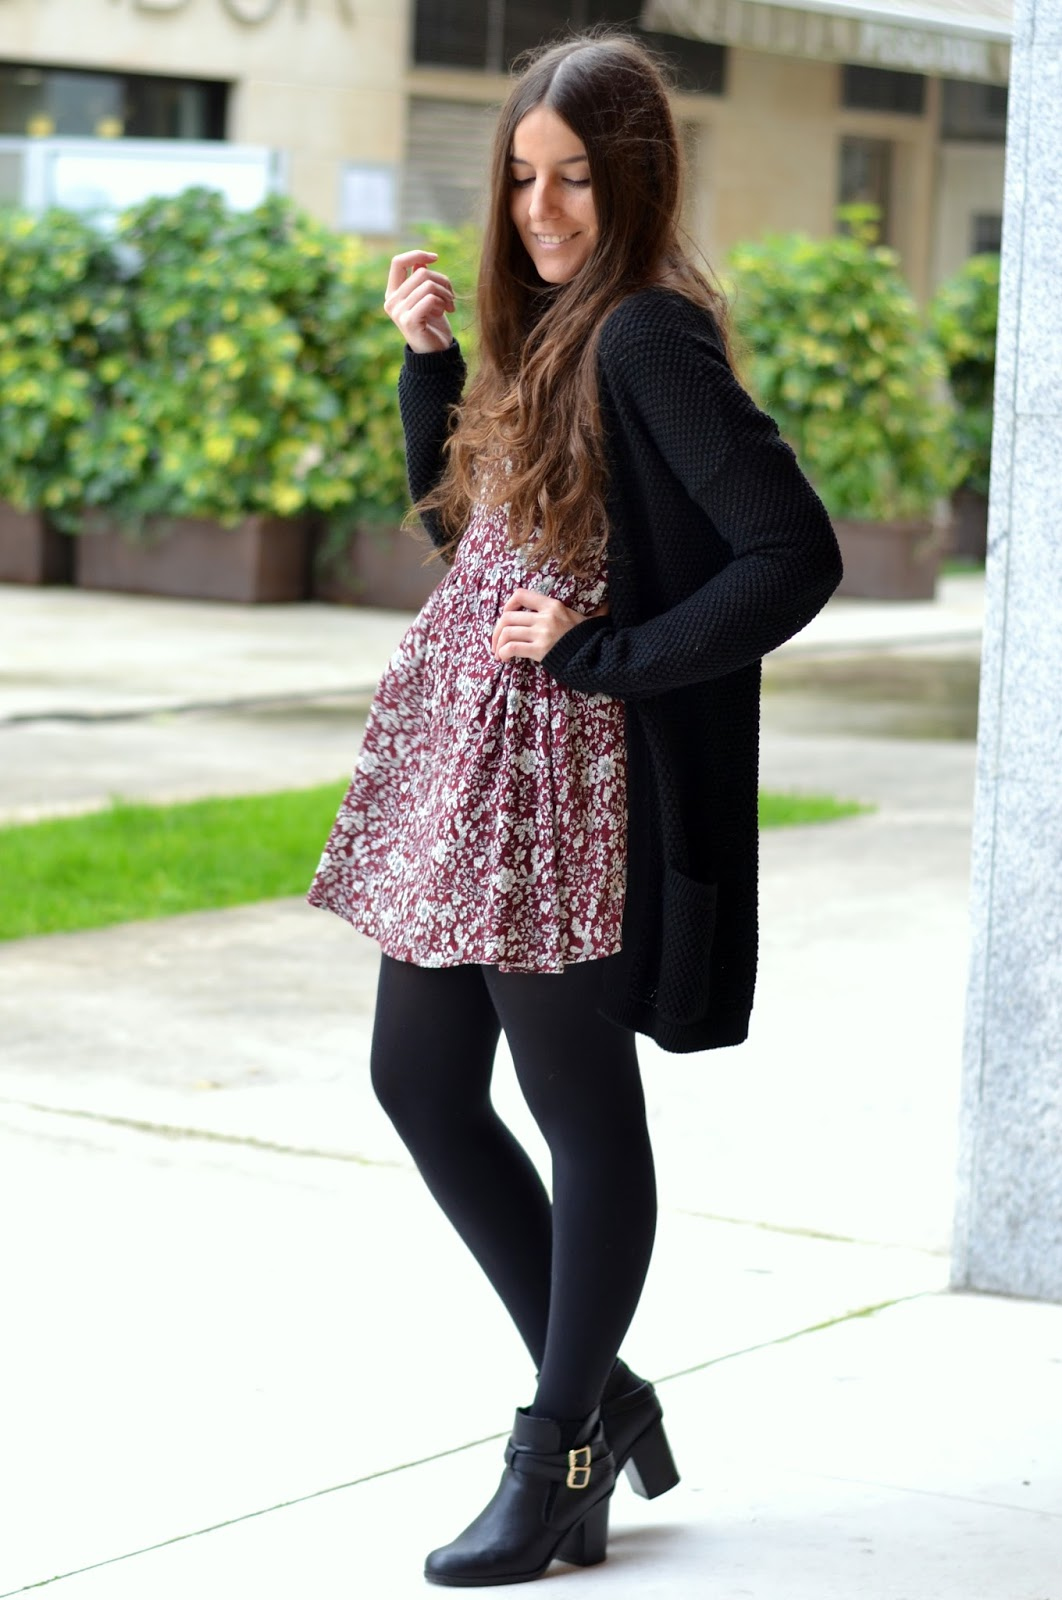 cardigan, dress, ankle boots